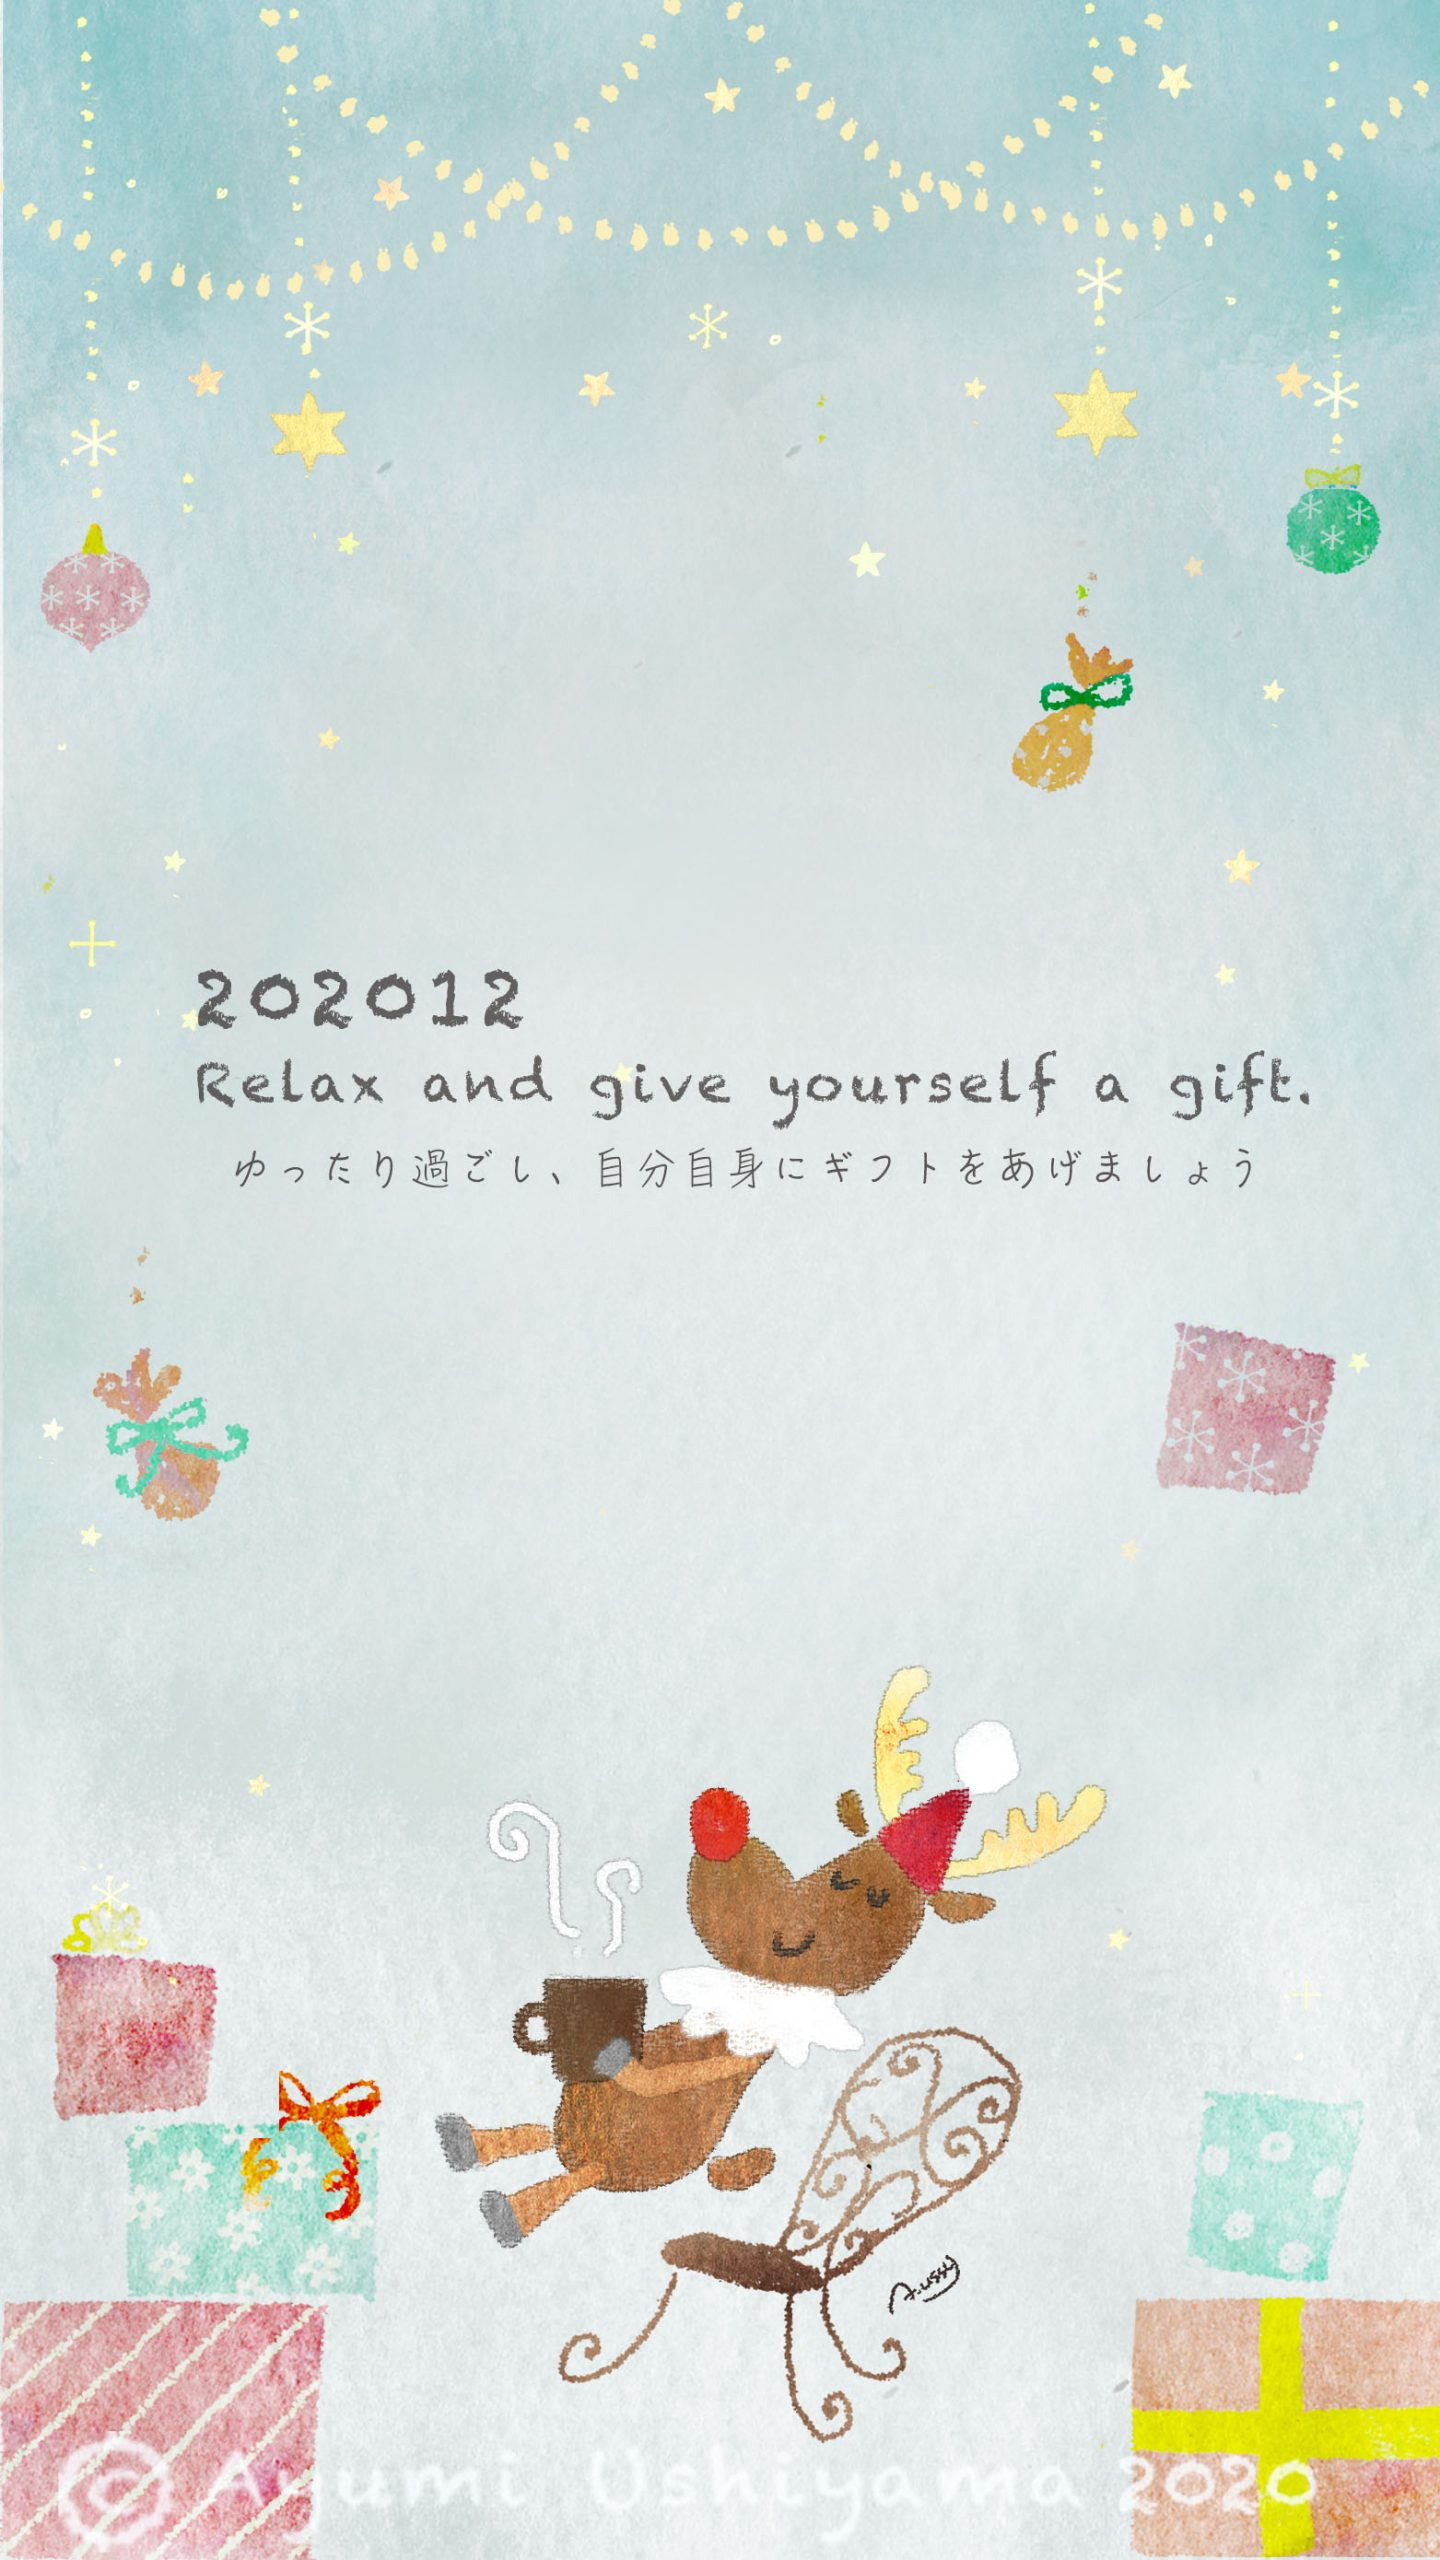 2020.12『Relax and give yourself a gift』